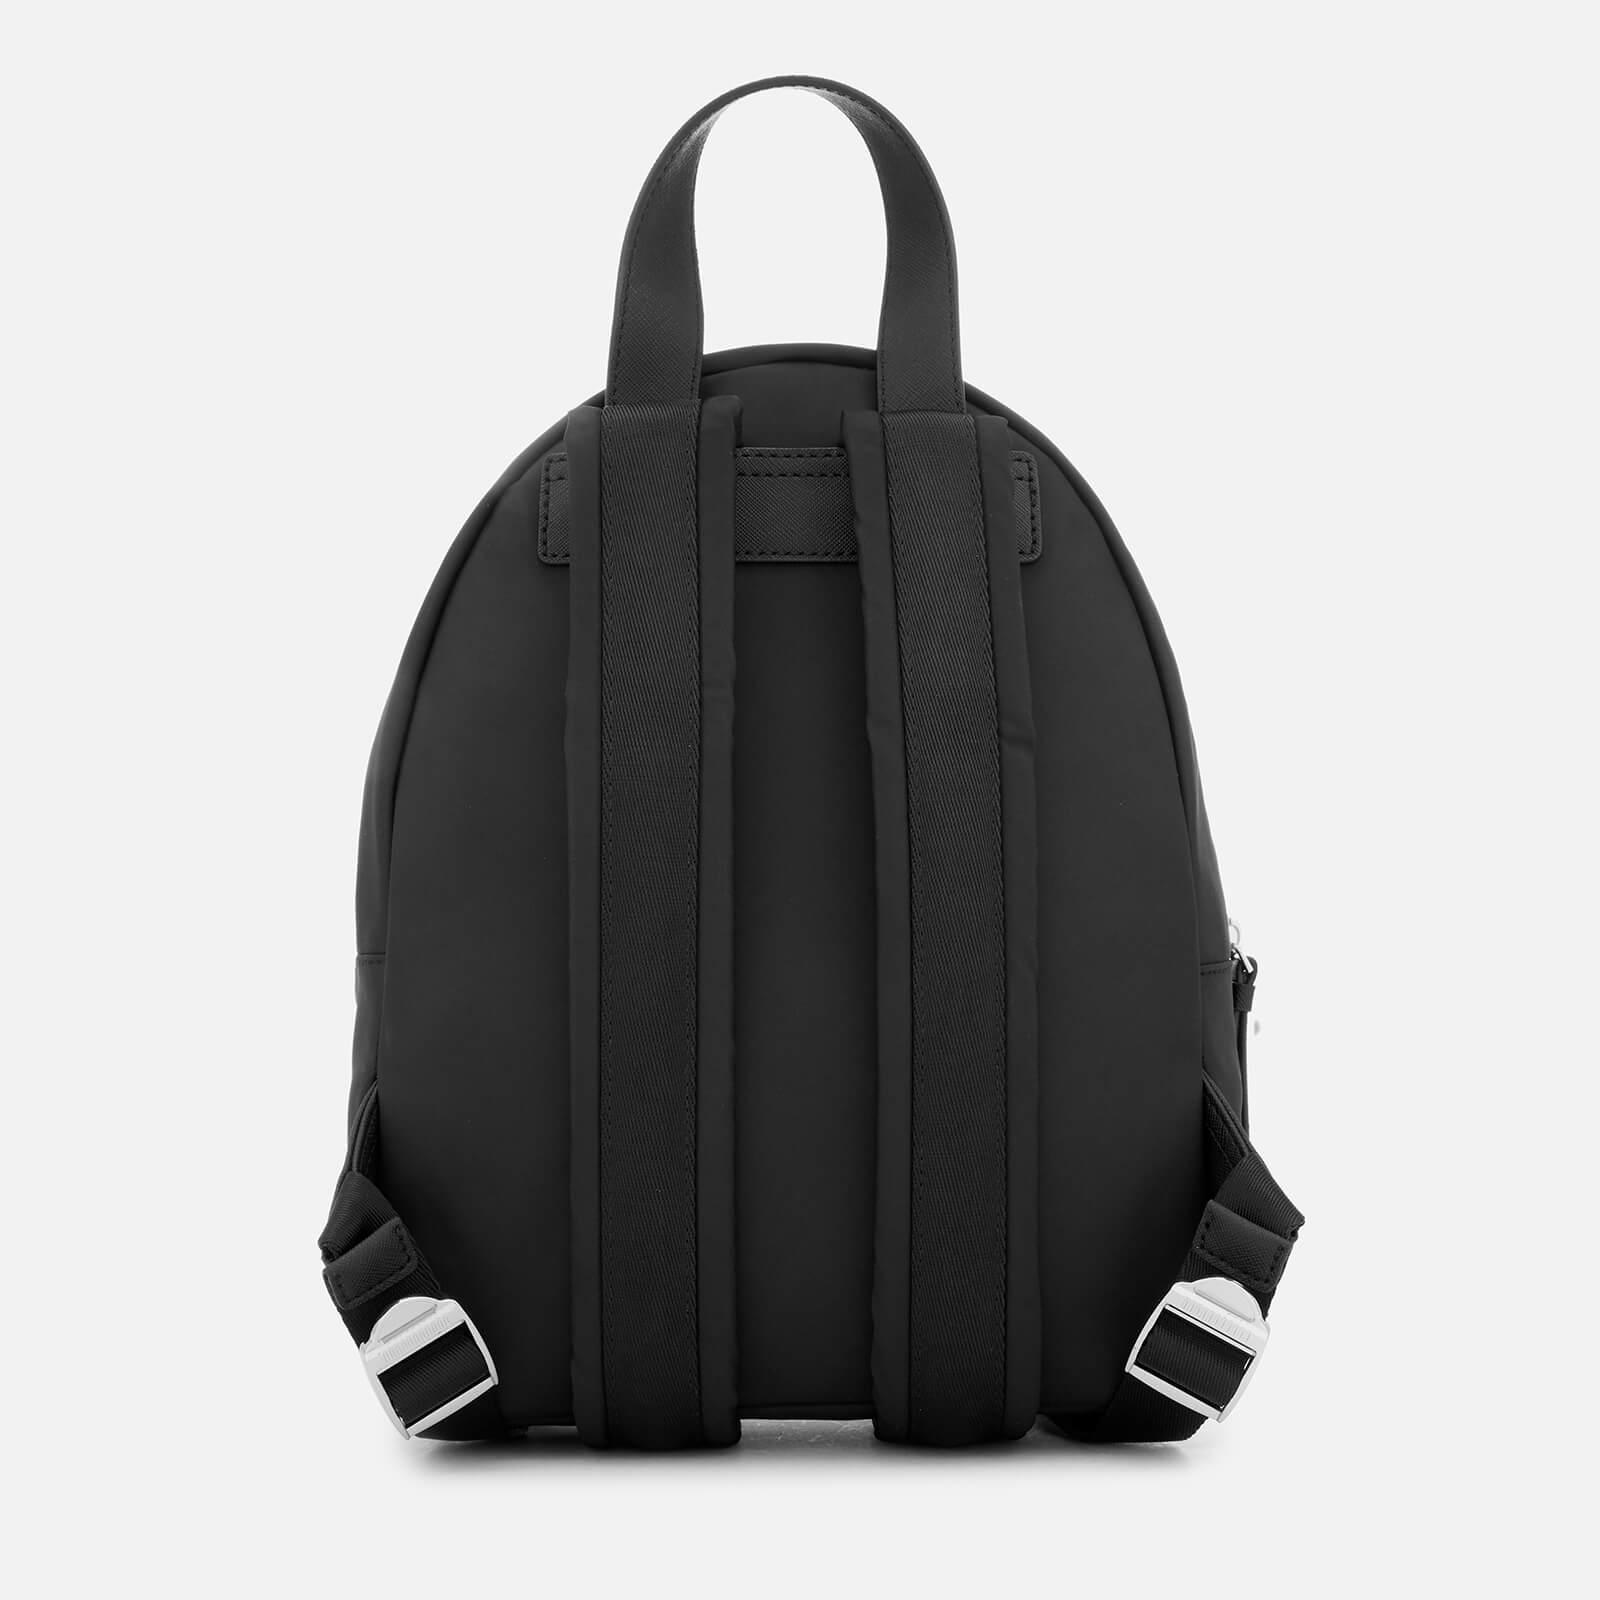 Dkny Casey Backpack in Black - Save 34.32203389830508% - Lyst c6d0d3e5fe36e